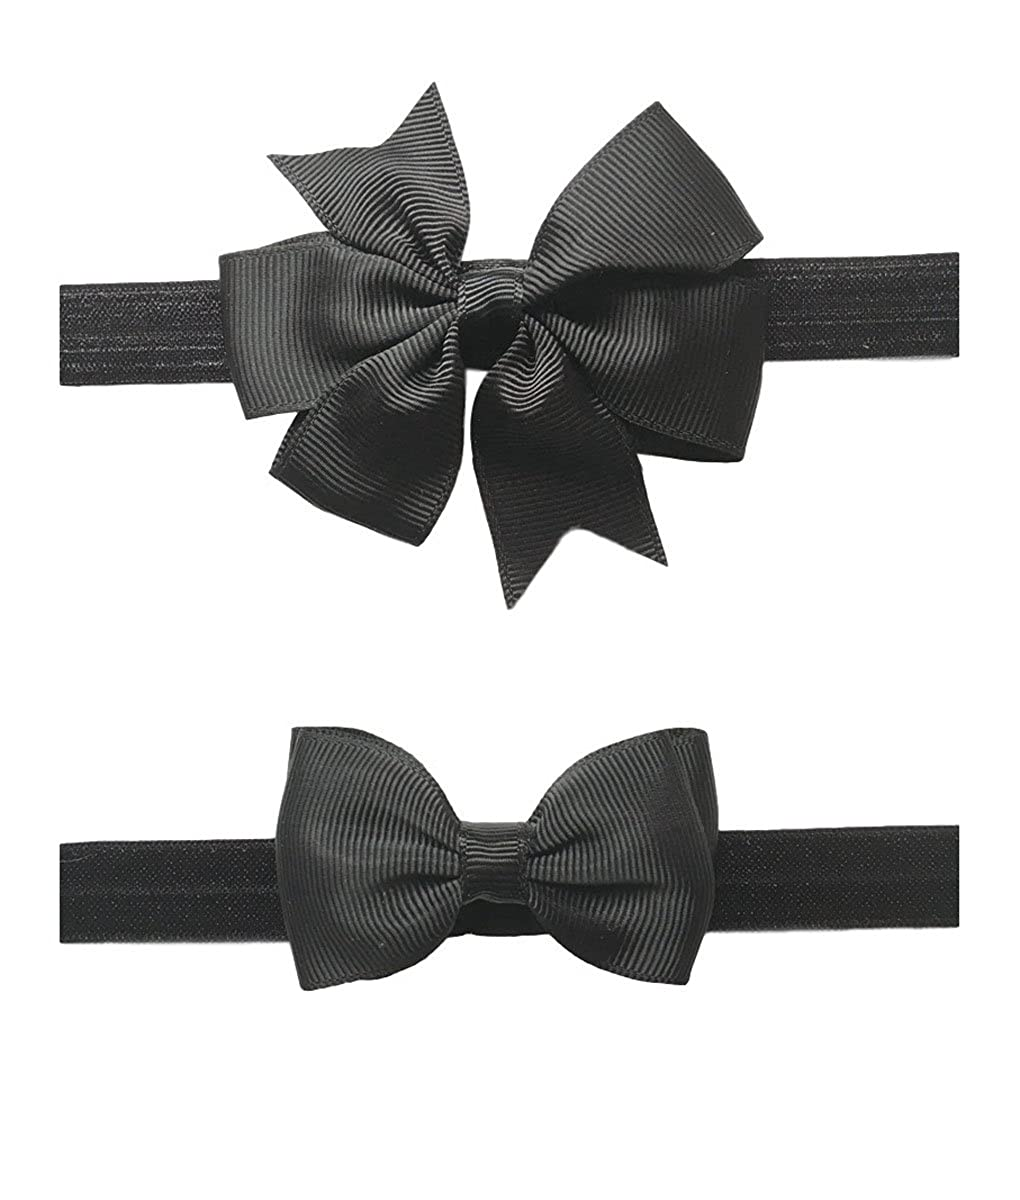 8d3017e6a9bf 1pc Grosgrain Ribbon Pinwheel + 1pc Ribbon Bows Hair Tie Material:Grosgrain  Ribbon Elastic Band Size: 7.09*0.59 Inch Pack: 2pc Set Baby Hairband